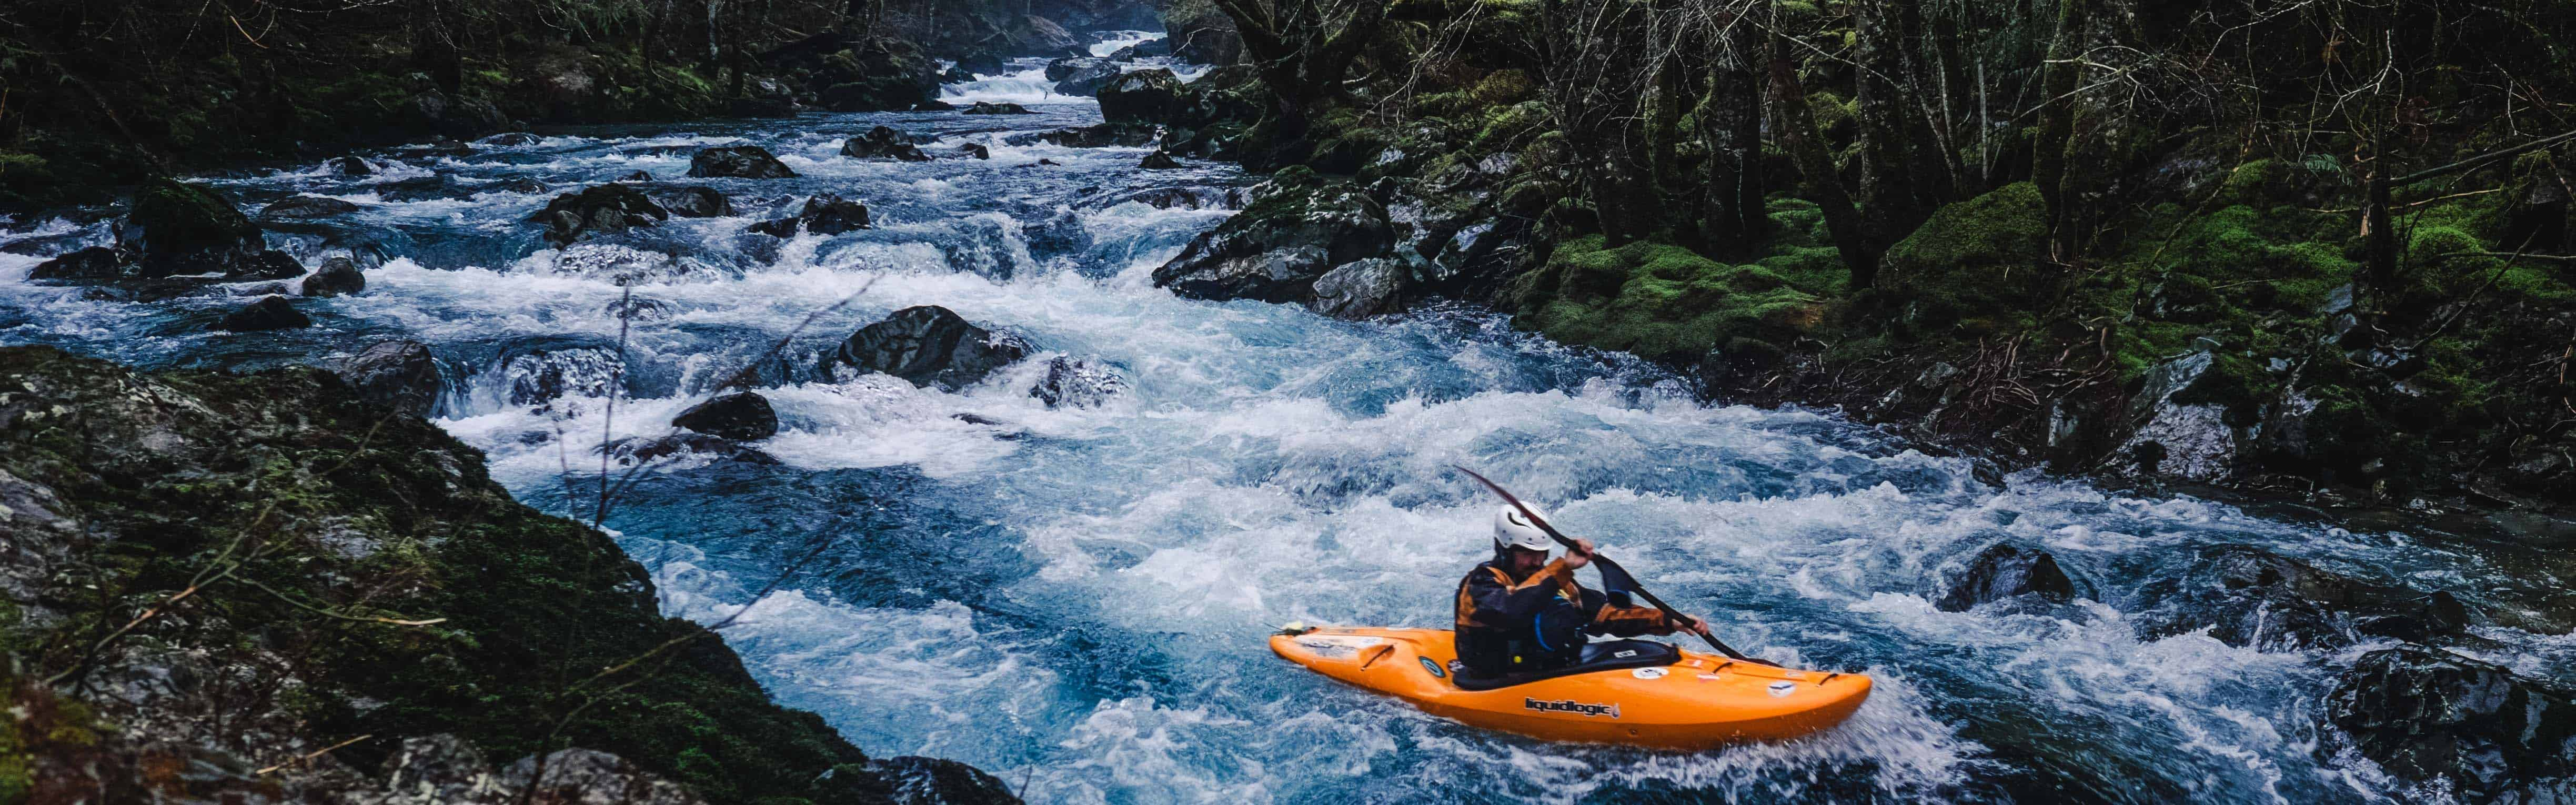 A paddler at the put in rapid on the Hamma Hamma River. Photo by Nate Wilson Photography